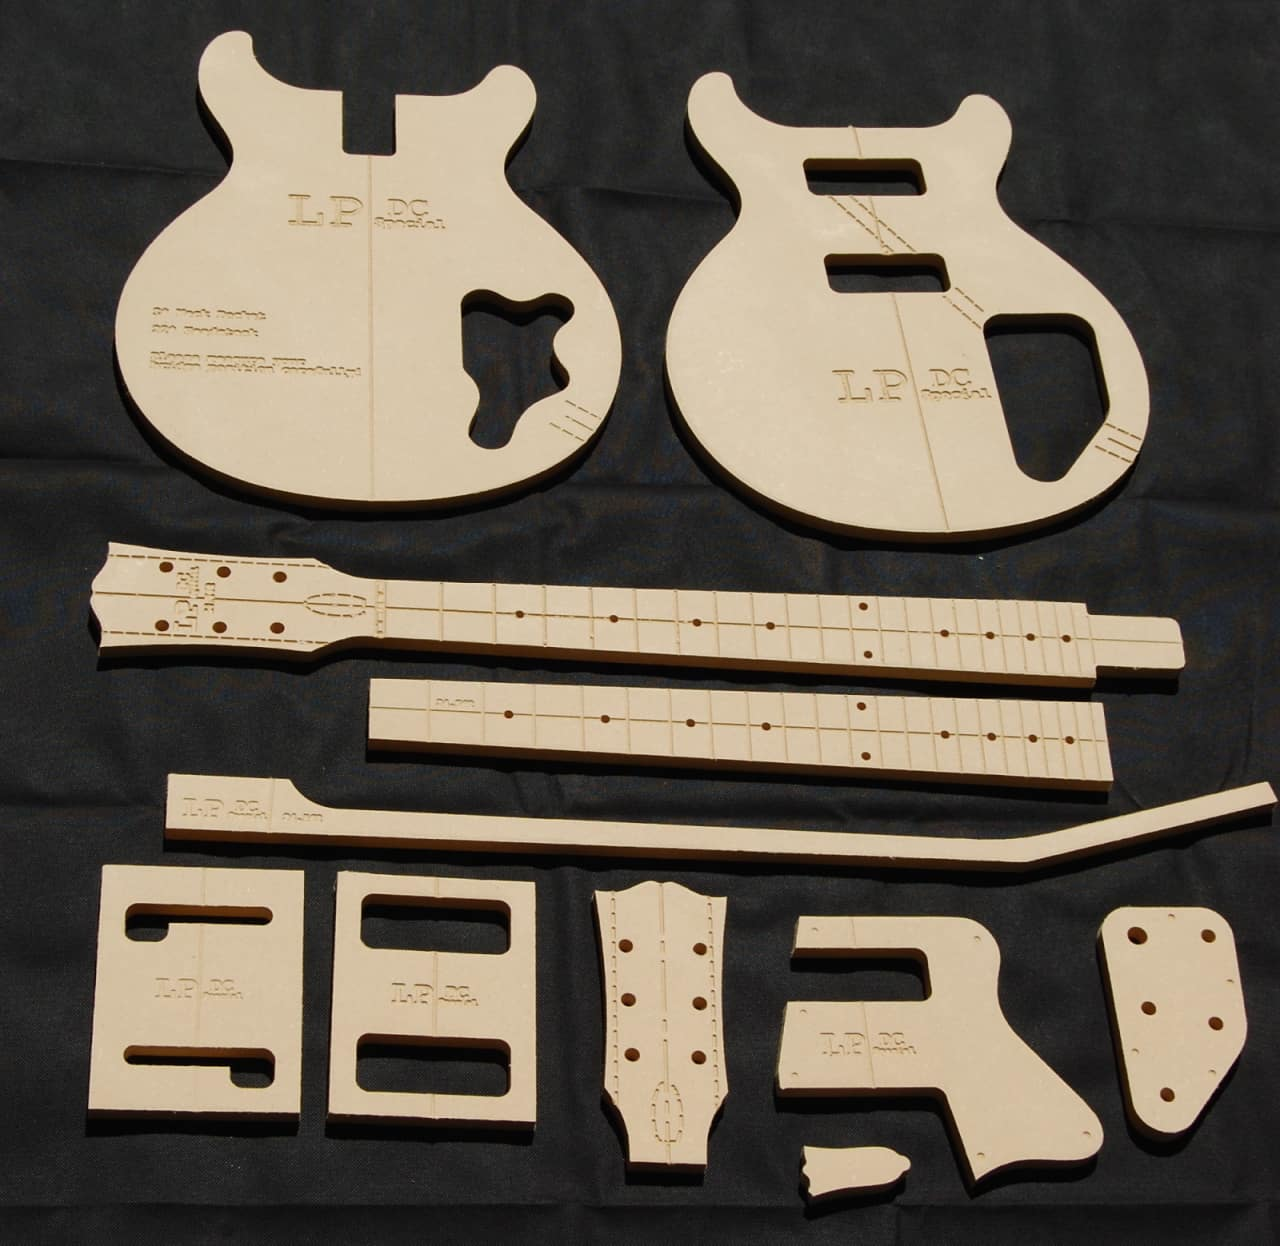 Lp dc special guitar router template set 1 2 mdf cnc for Router templates for signs